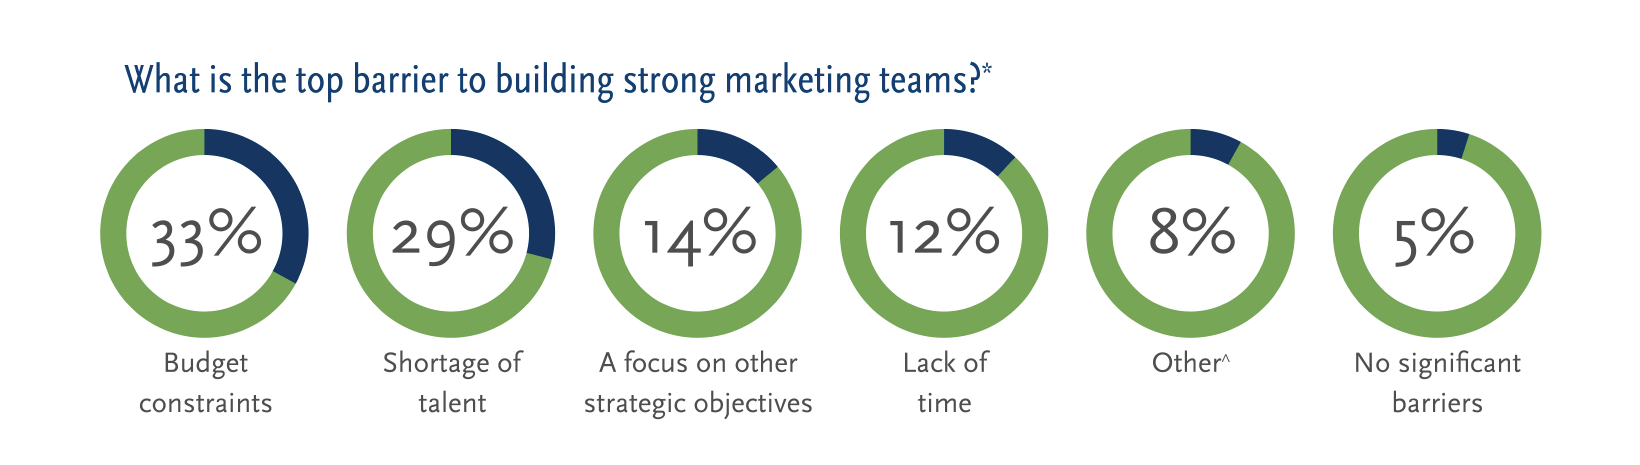 2016 CMO Summit Survey